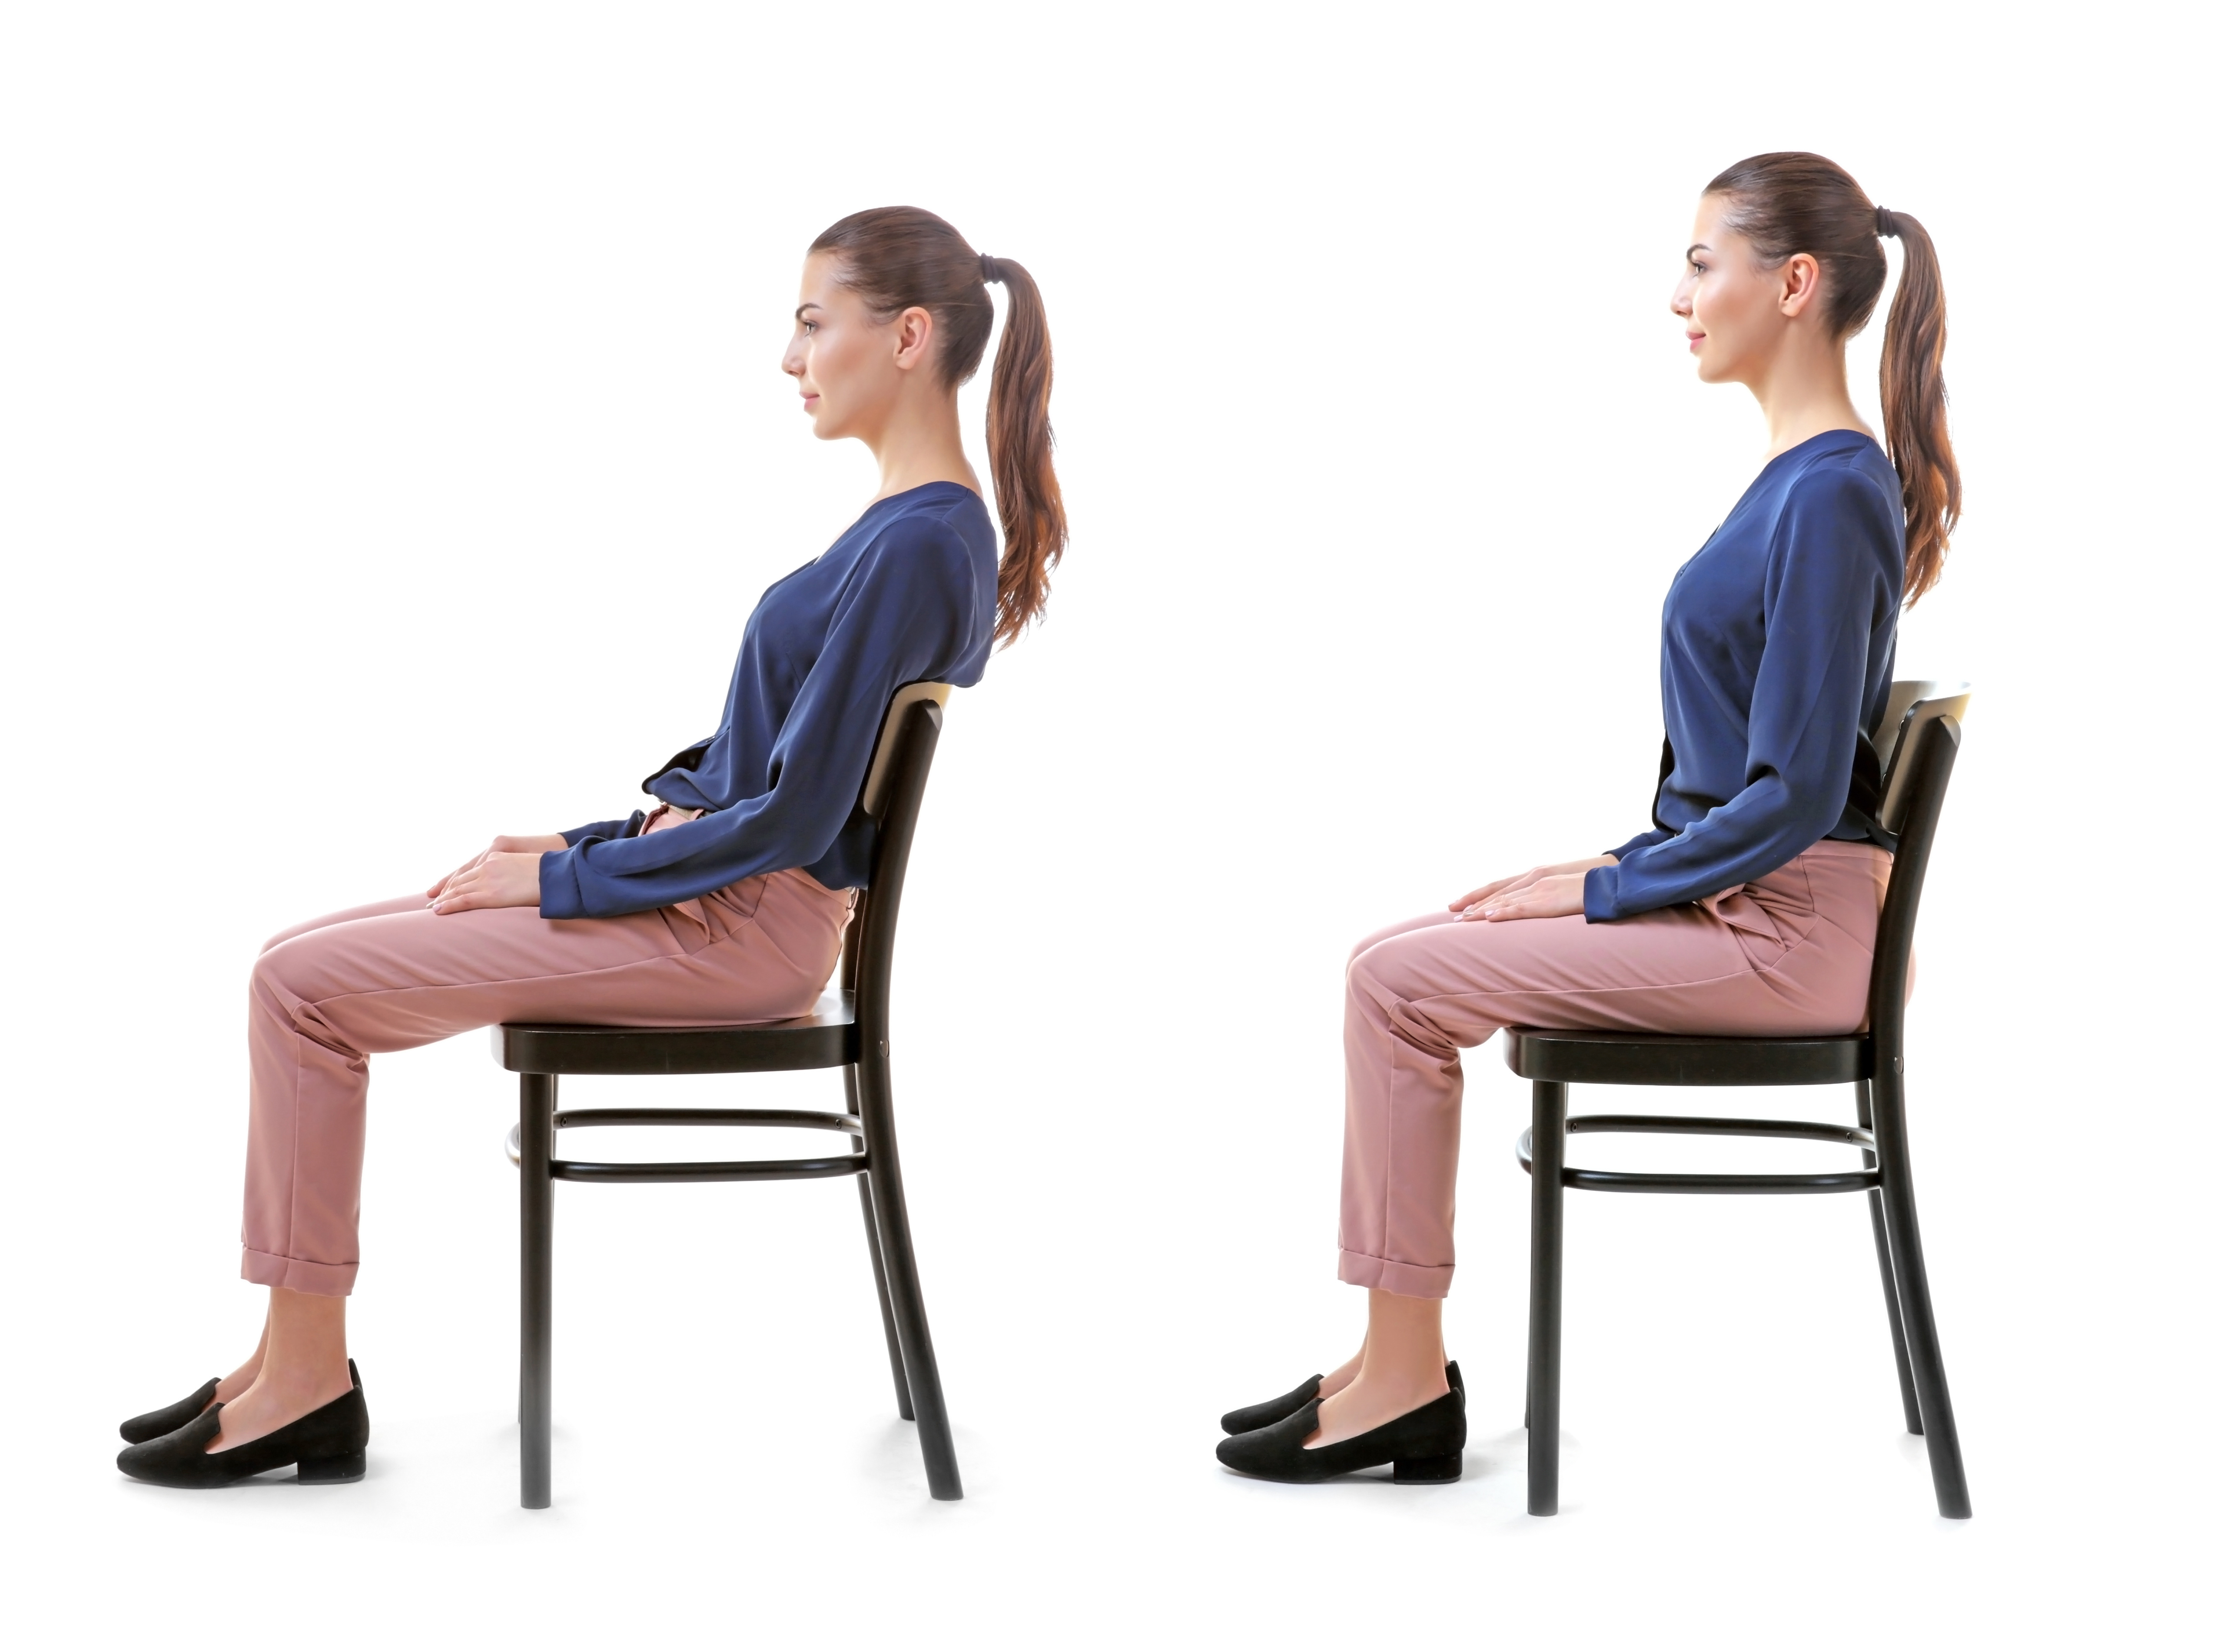 Good posture is important, massage therapy, watch your posture